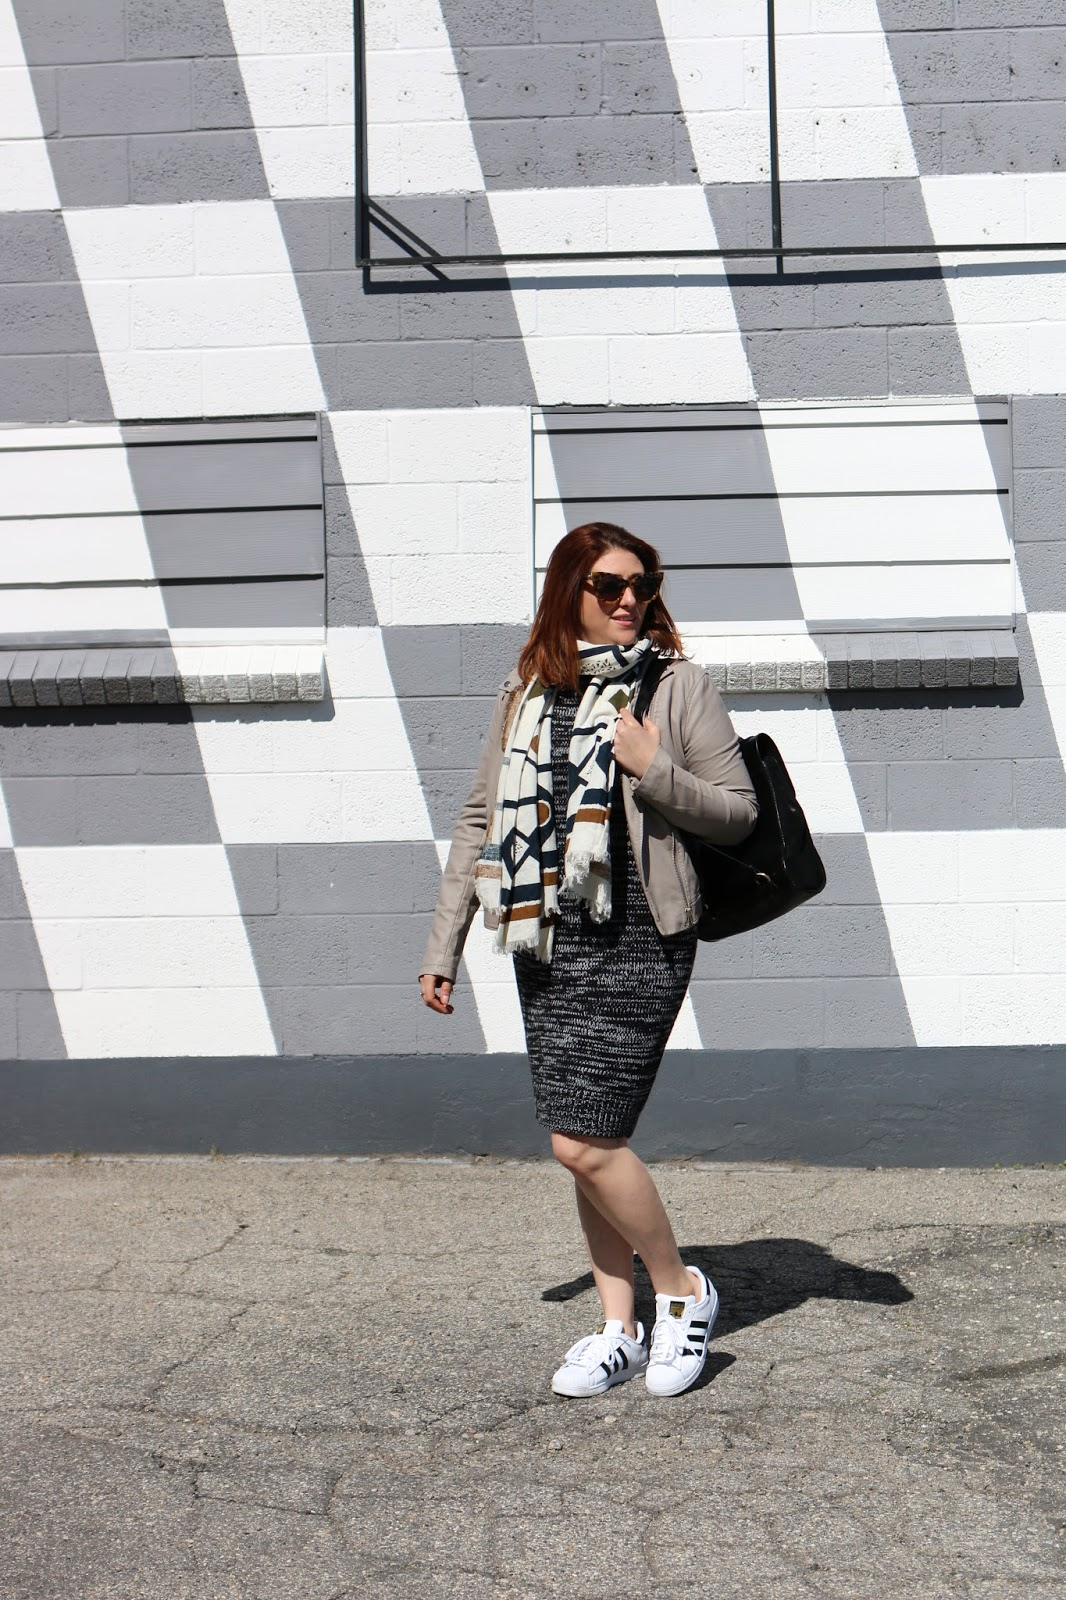 adidas classics, sweater dress, blanket scarf, casual outfit, red hair